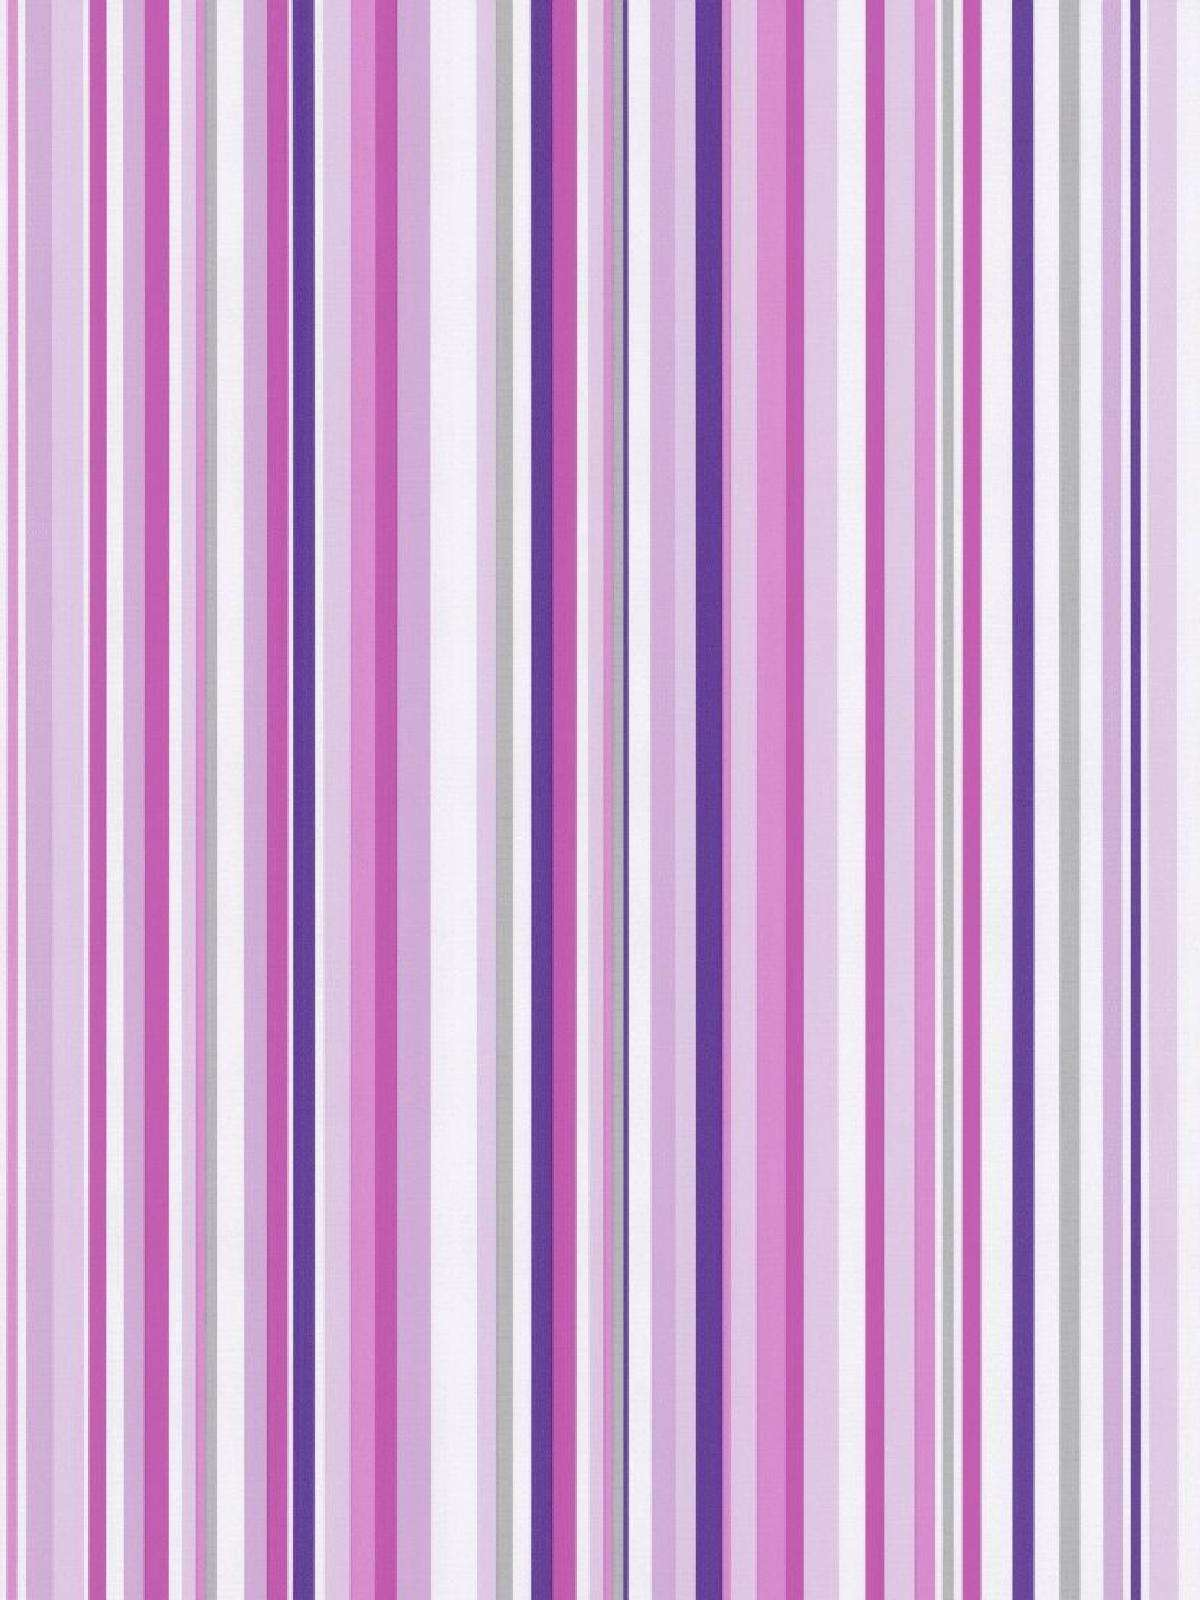 Pink And White Striped Wallpaper   HD Wallpapers Lovely 1200x1600